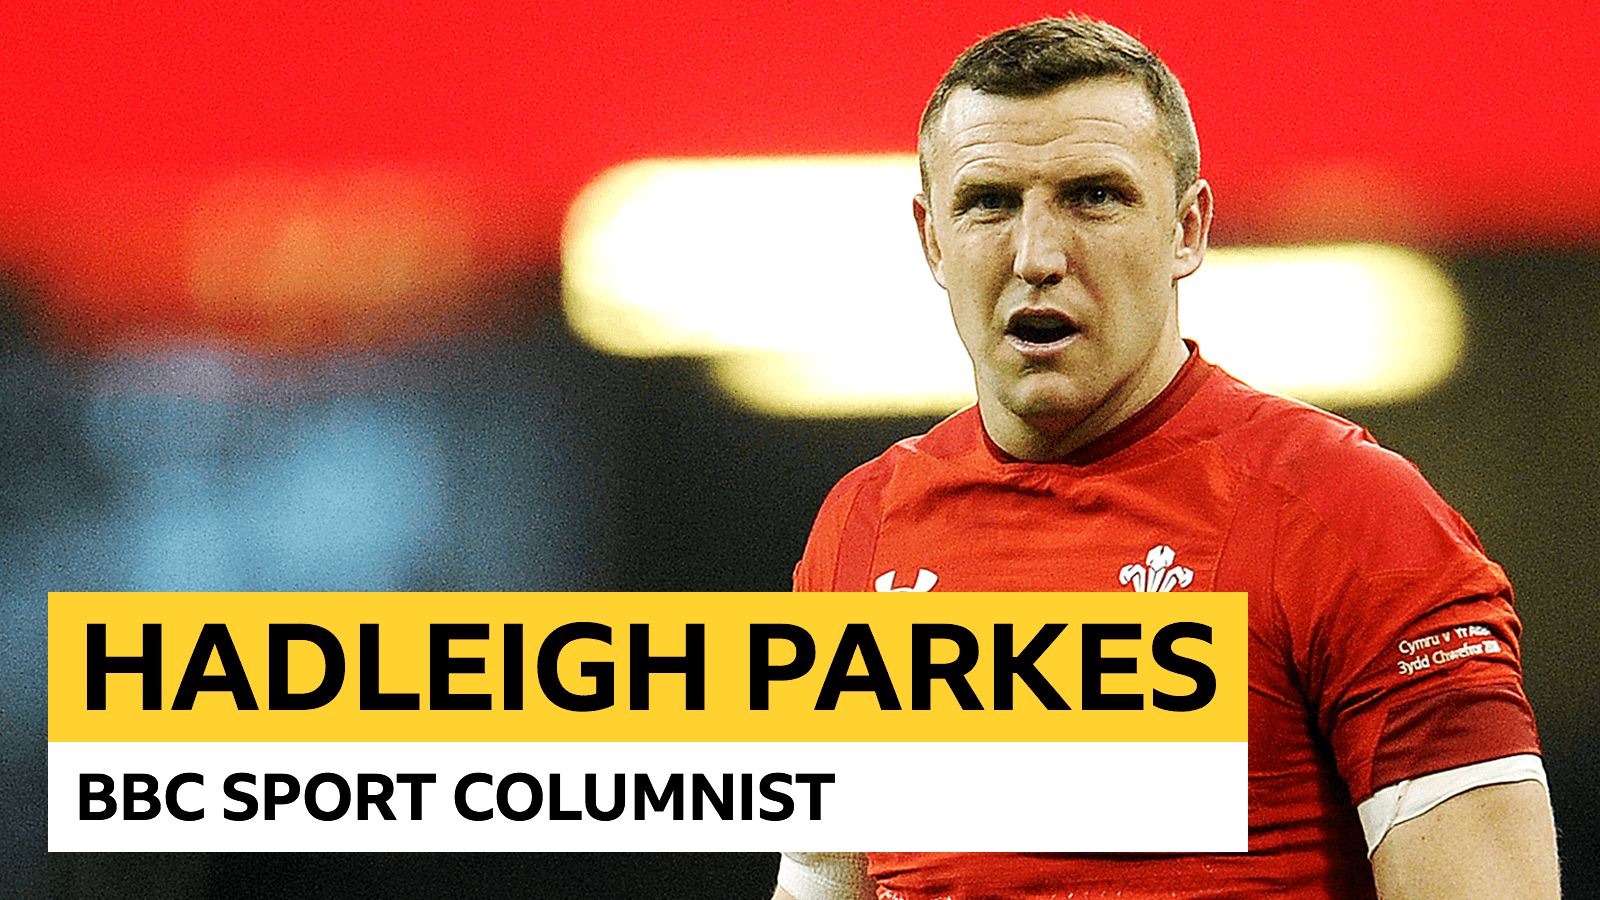 'There's more of an edge to this one against England' - Hadleigh Parkes column